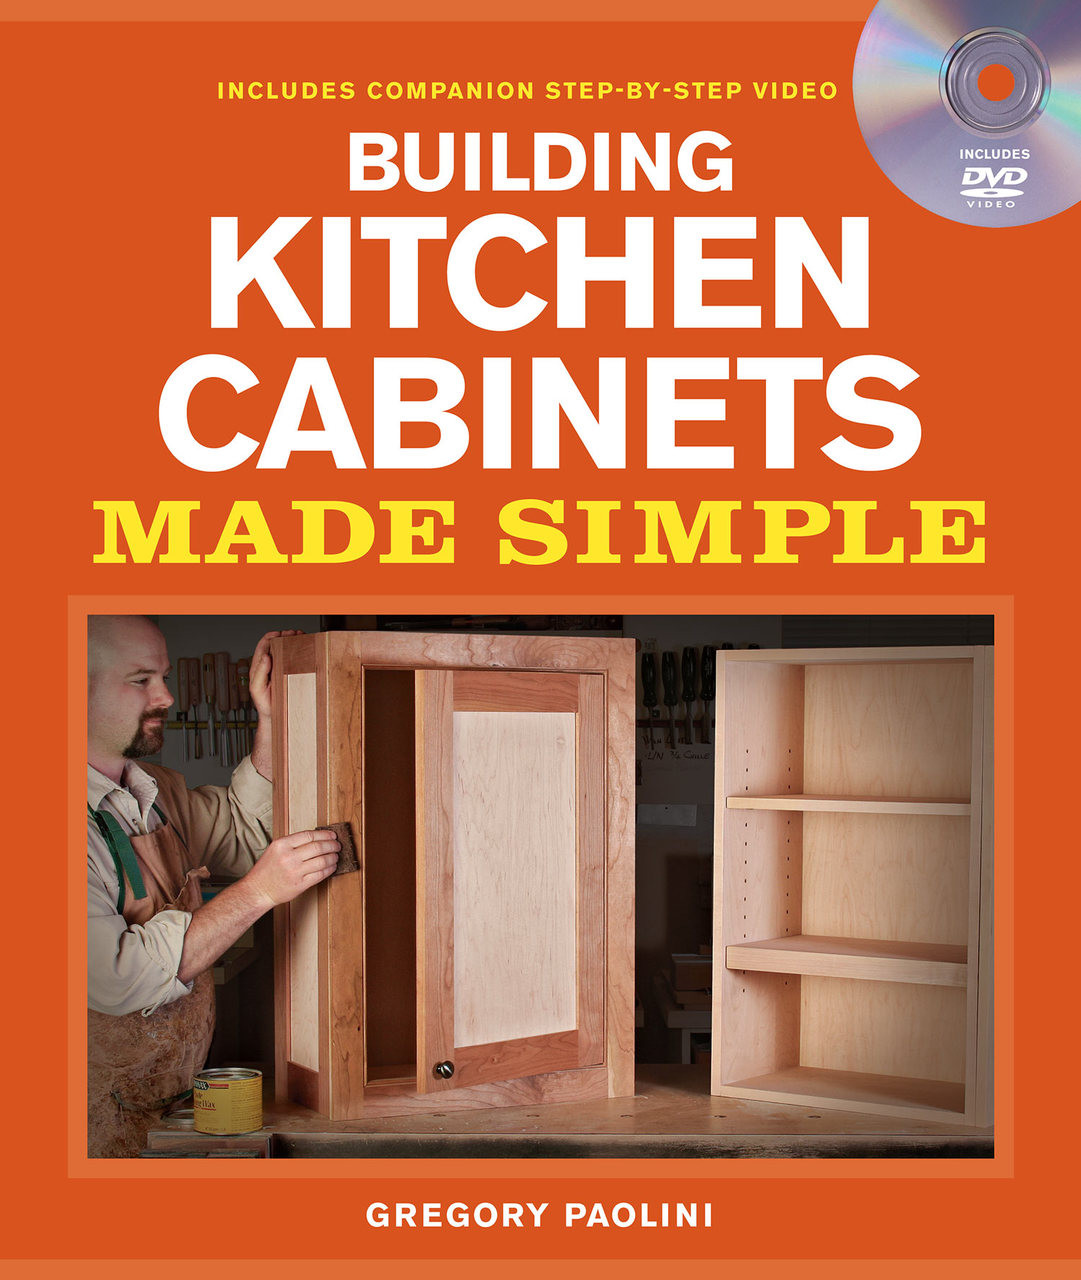 Building Kitchen Cabinets Made Simple